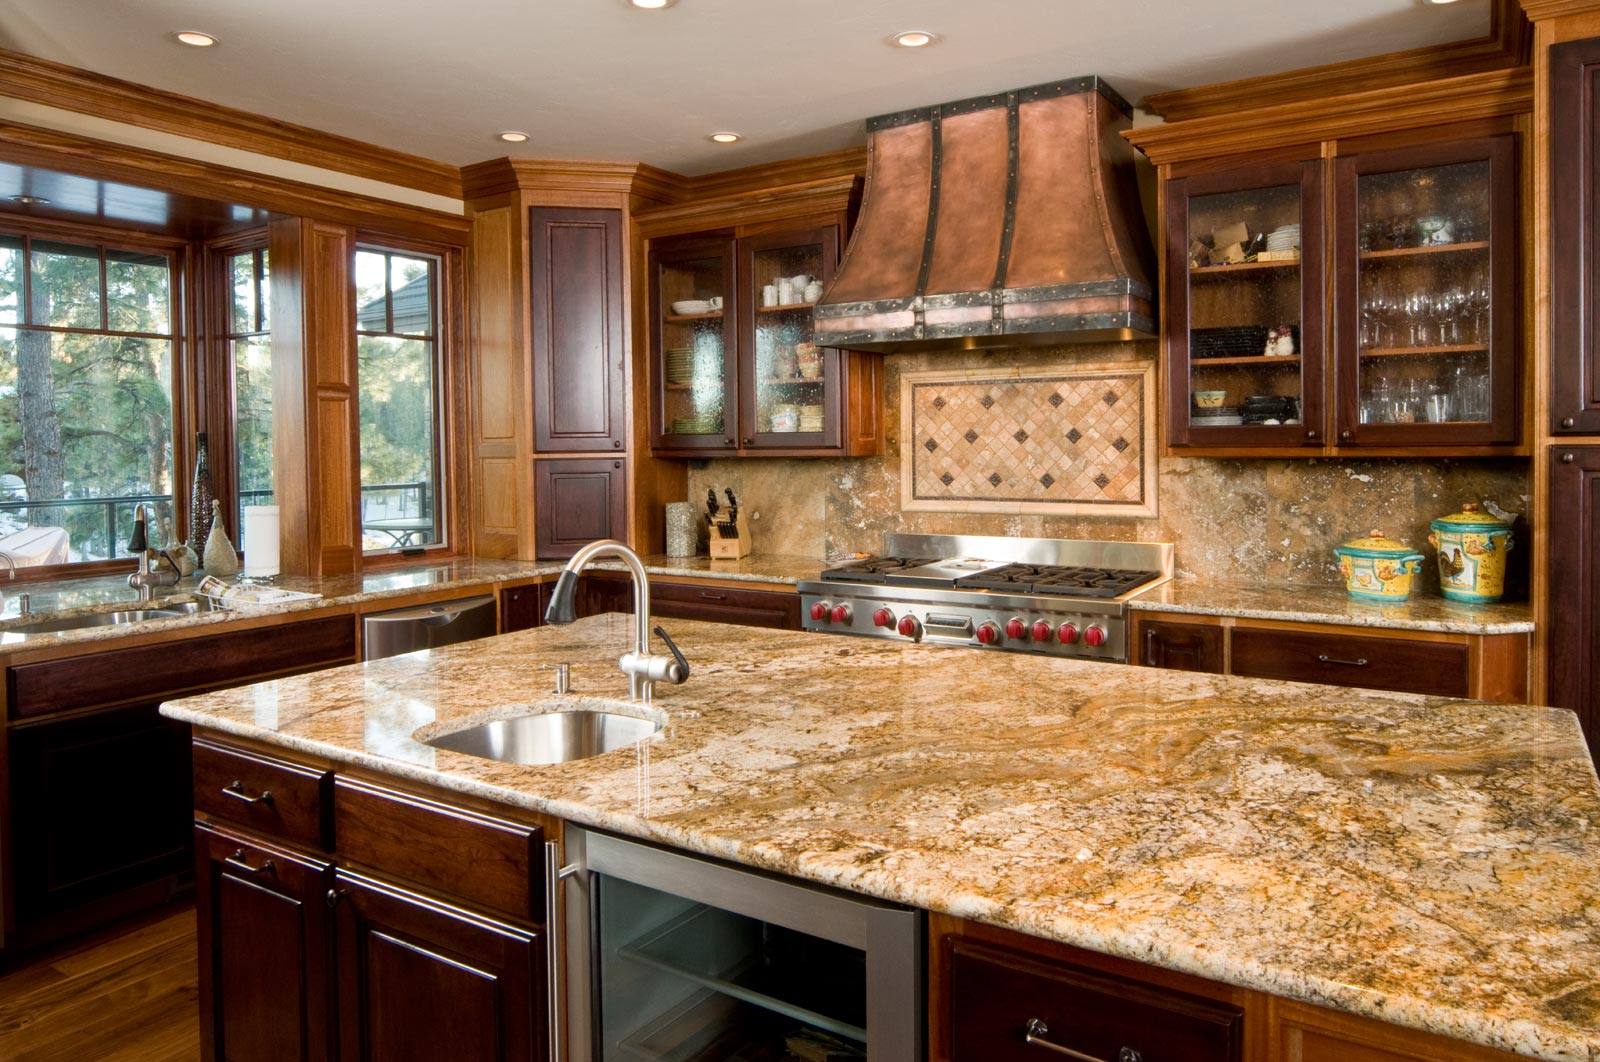 Countertop Kitchen : ... kitchen countertops many older kitchens featured laminate countertops